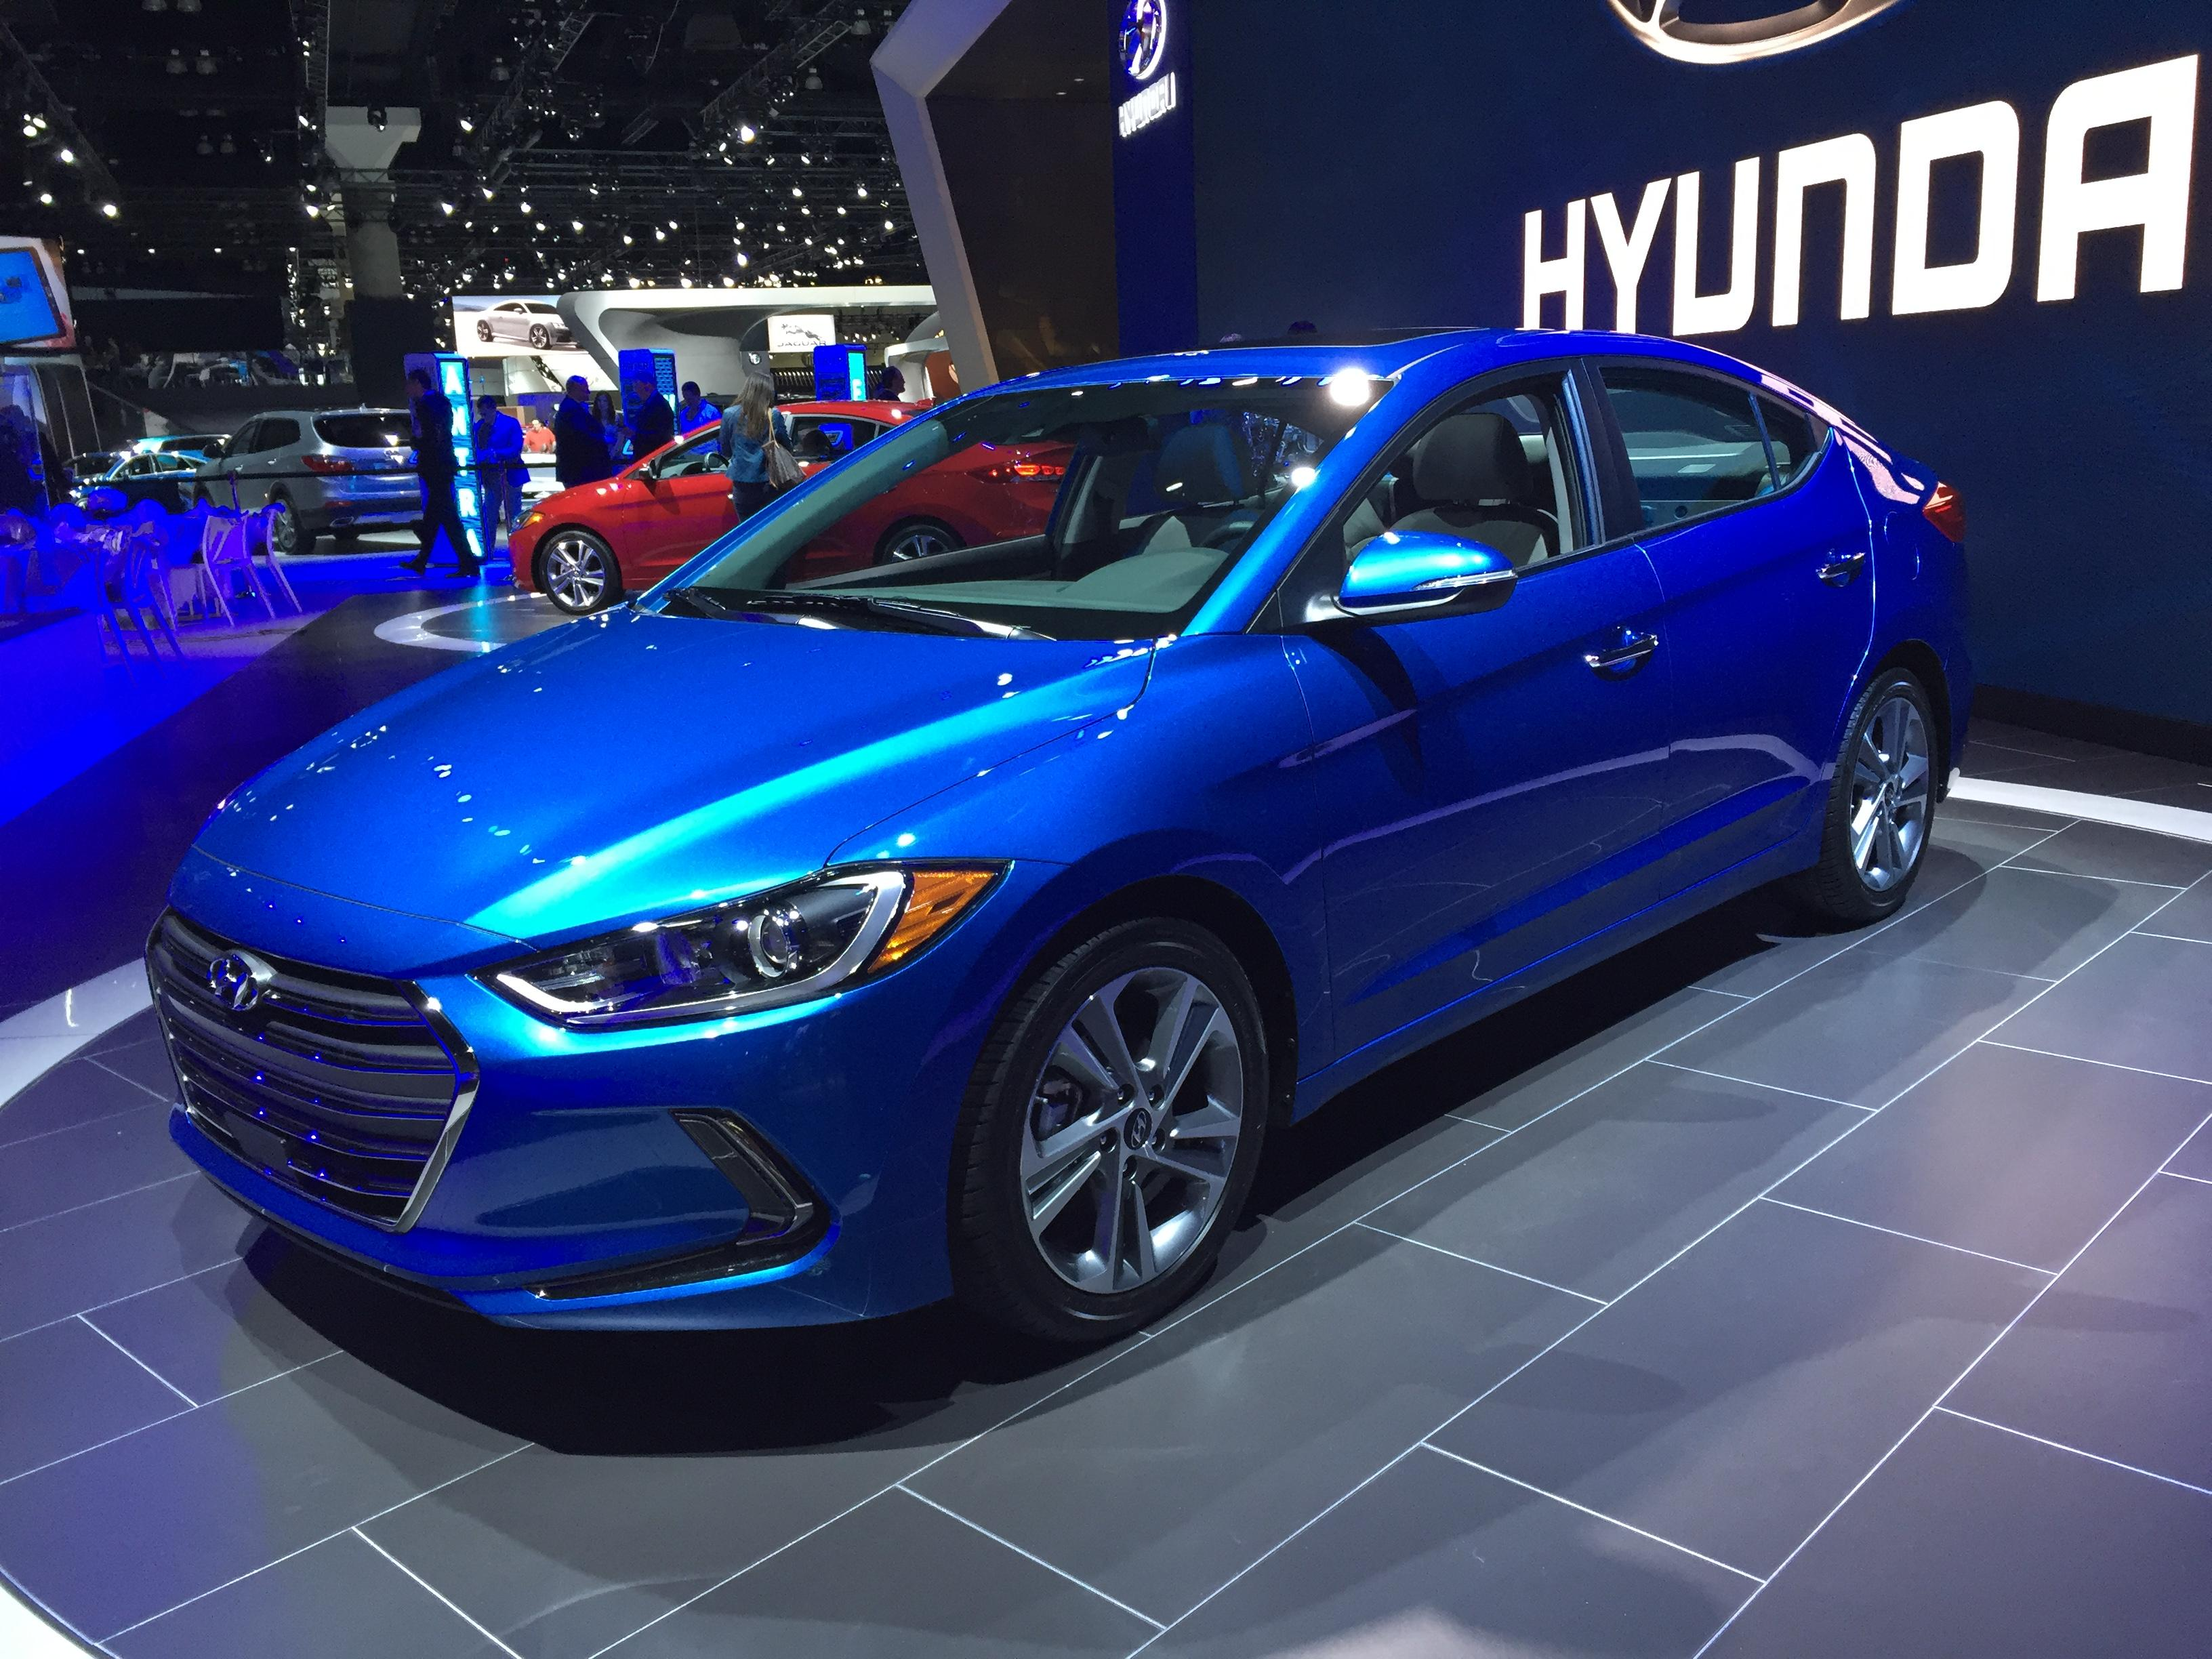 2017 Hyundai Elantra At The LA Auto Show